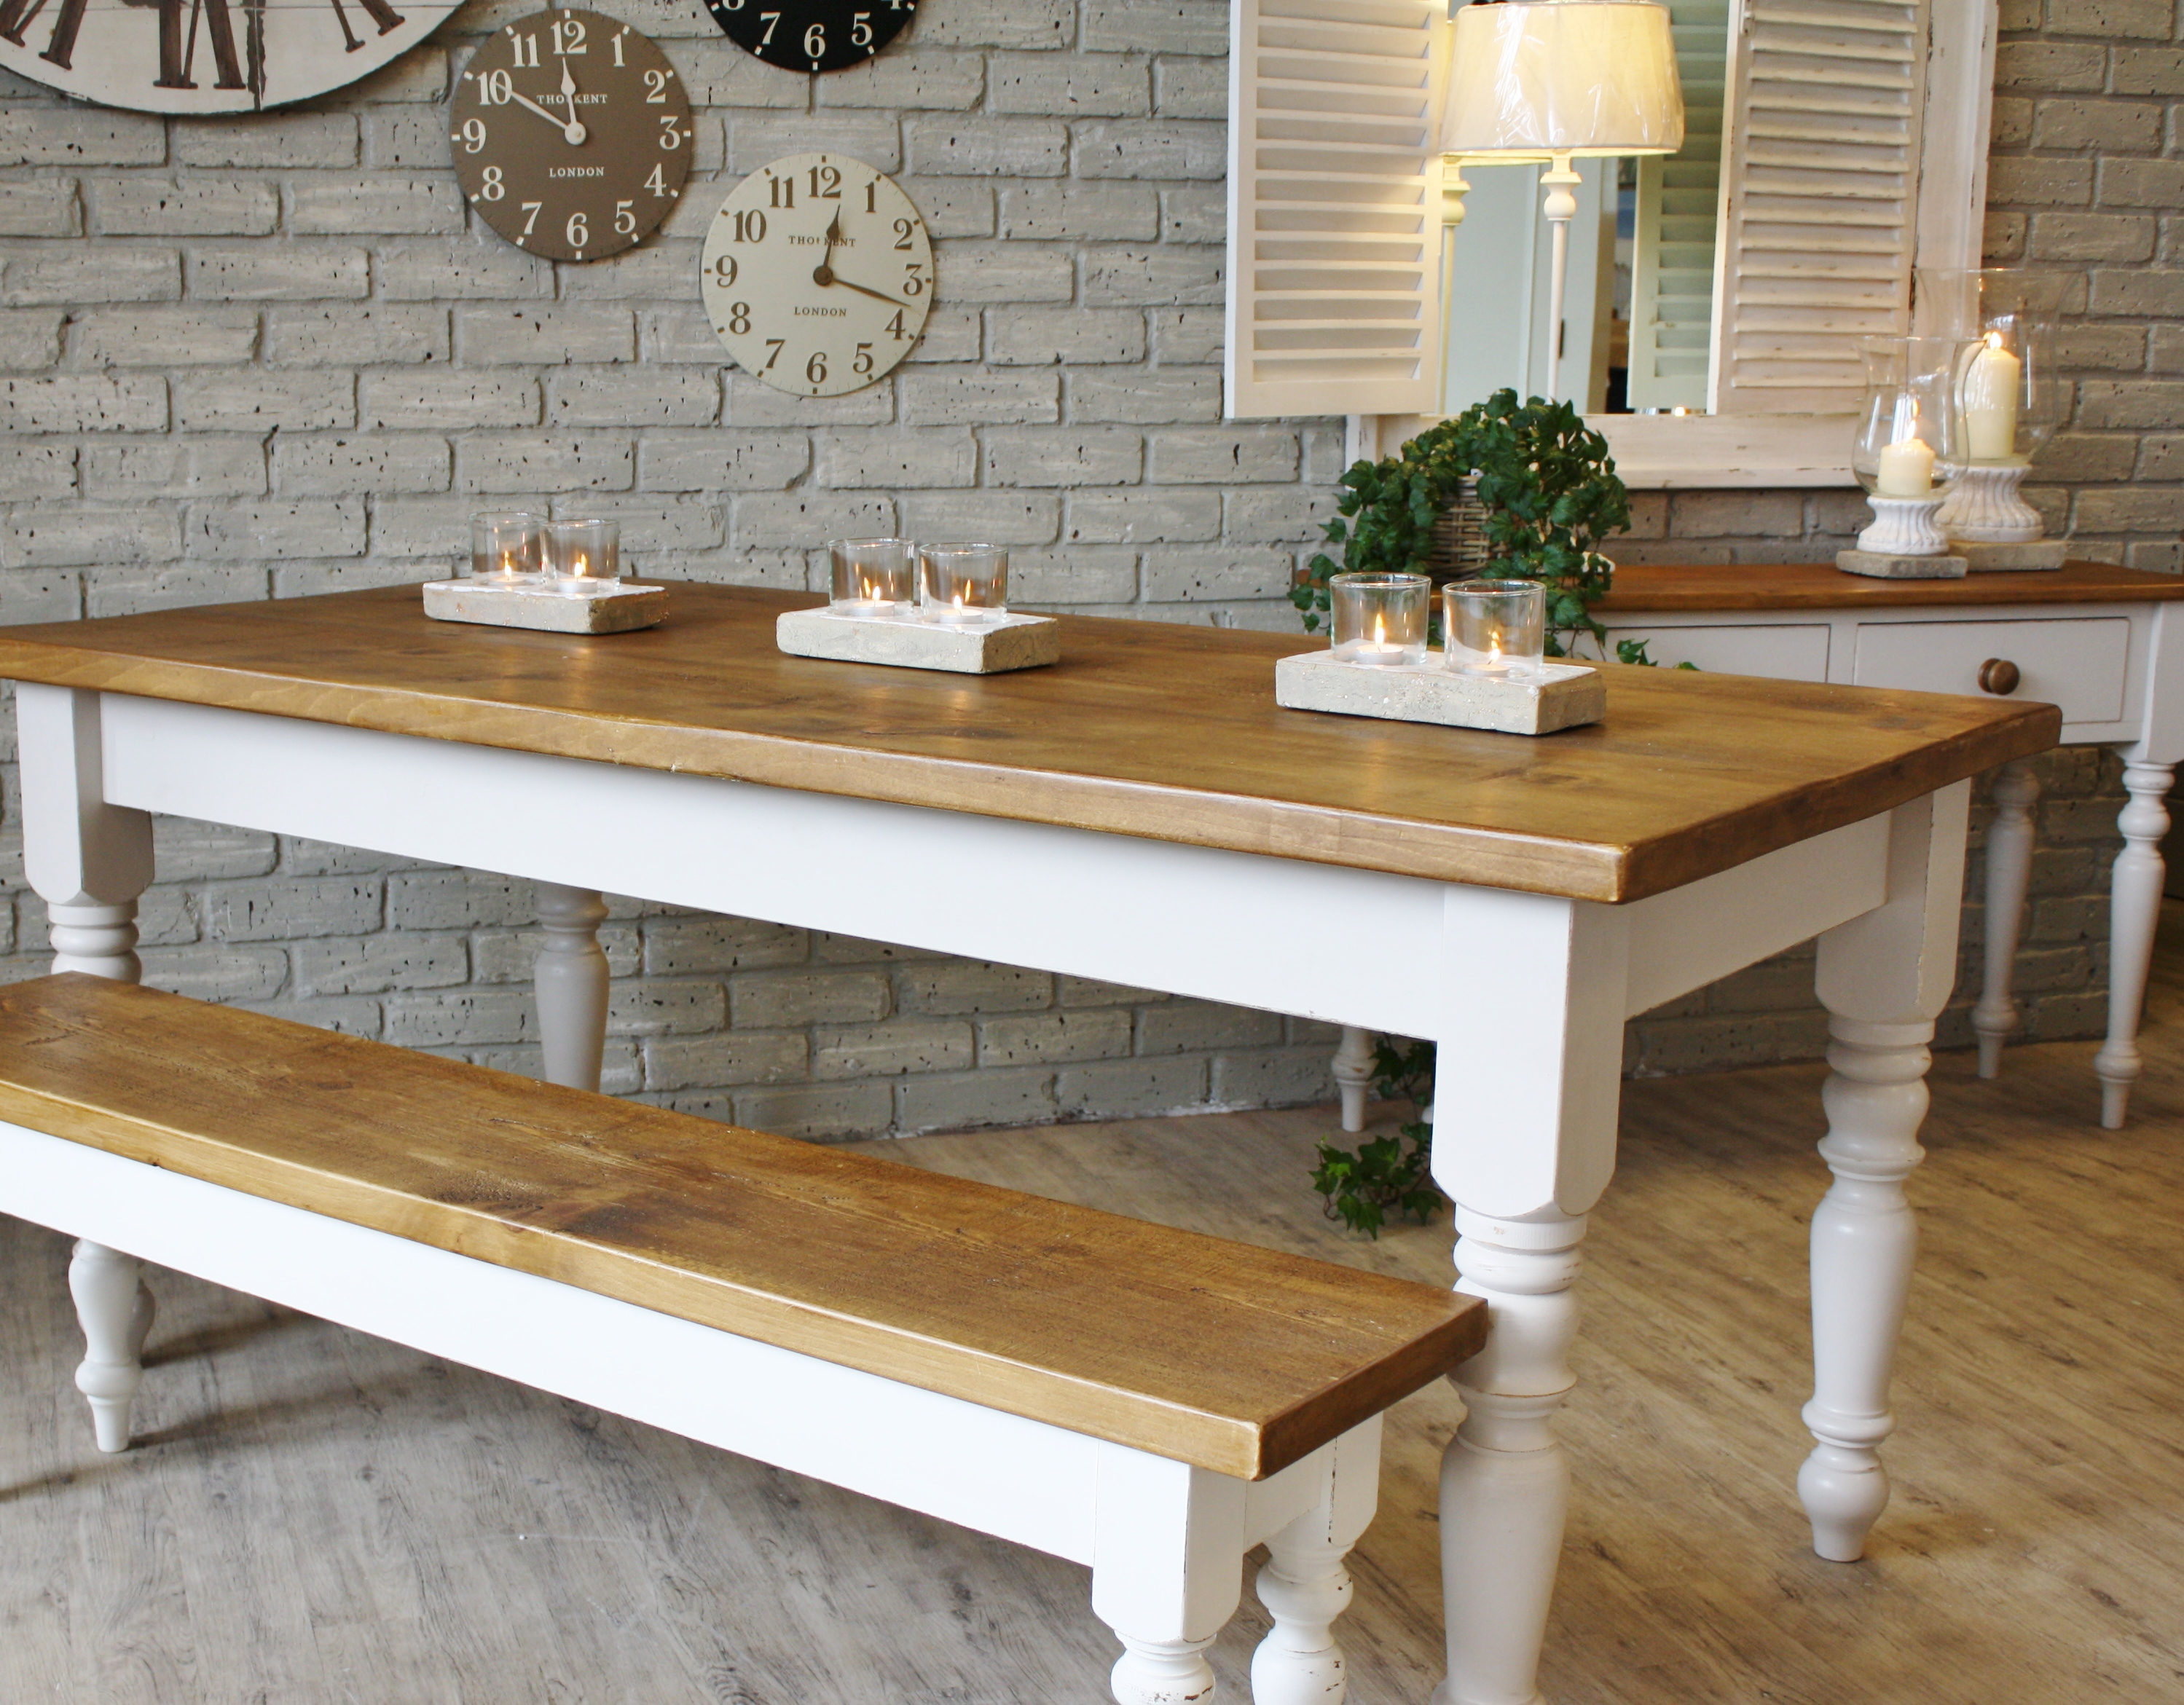 Kitchen Table With Bench Seating And Chairs Farmhouse Wooden Kitchen Tables As Ageless Rustic Interior